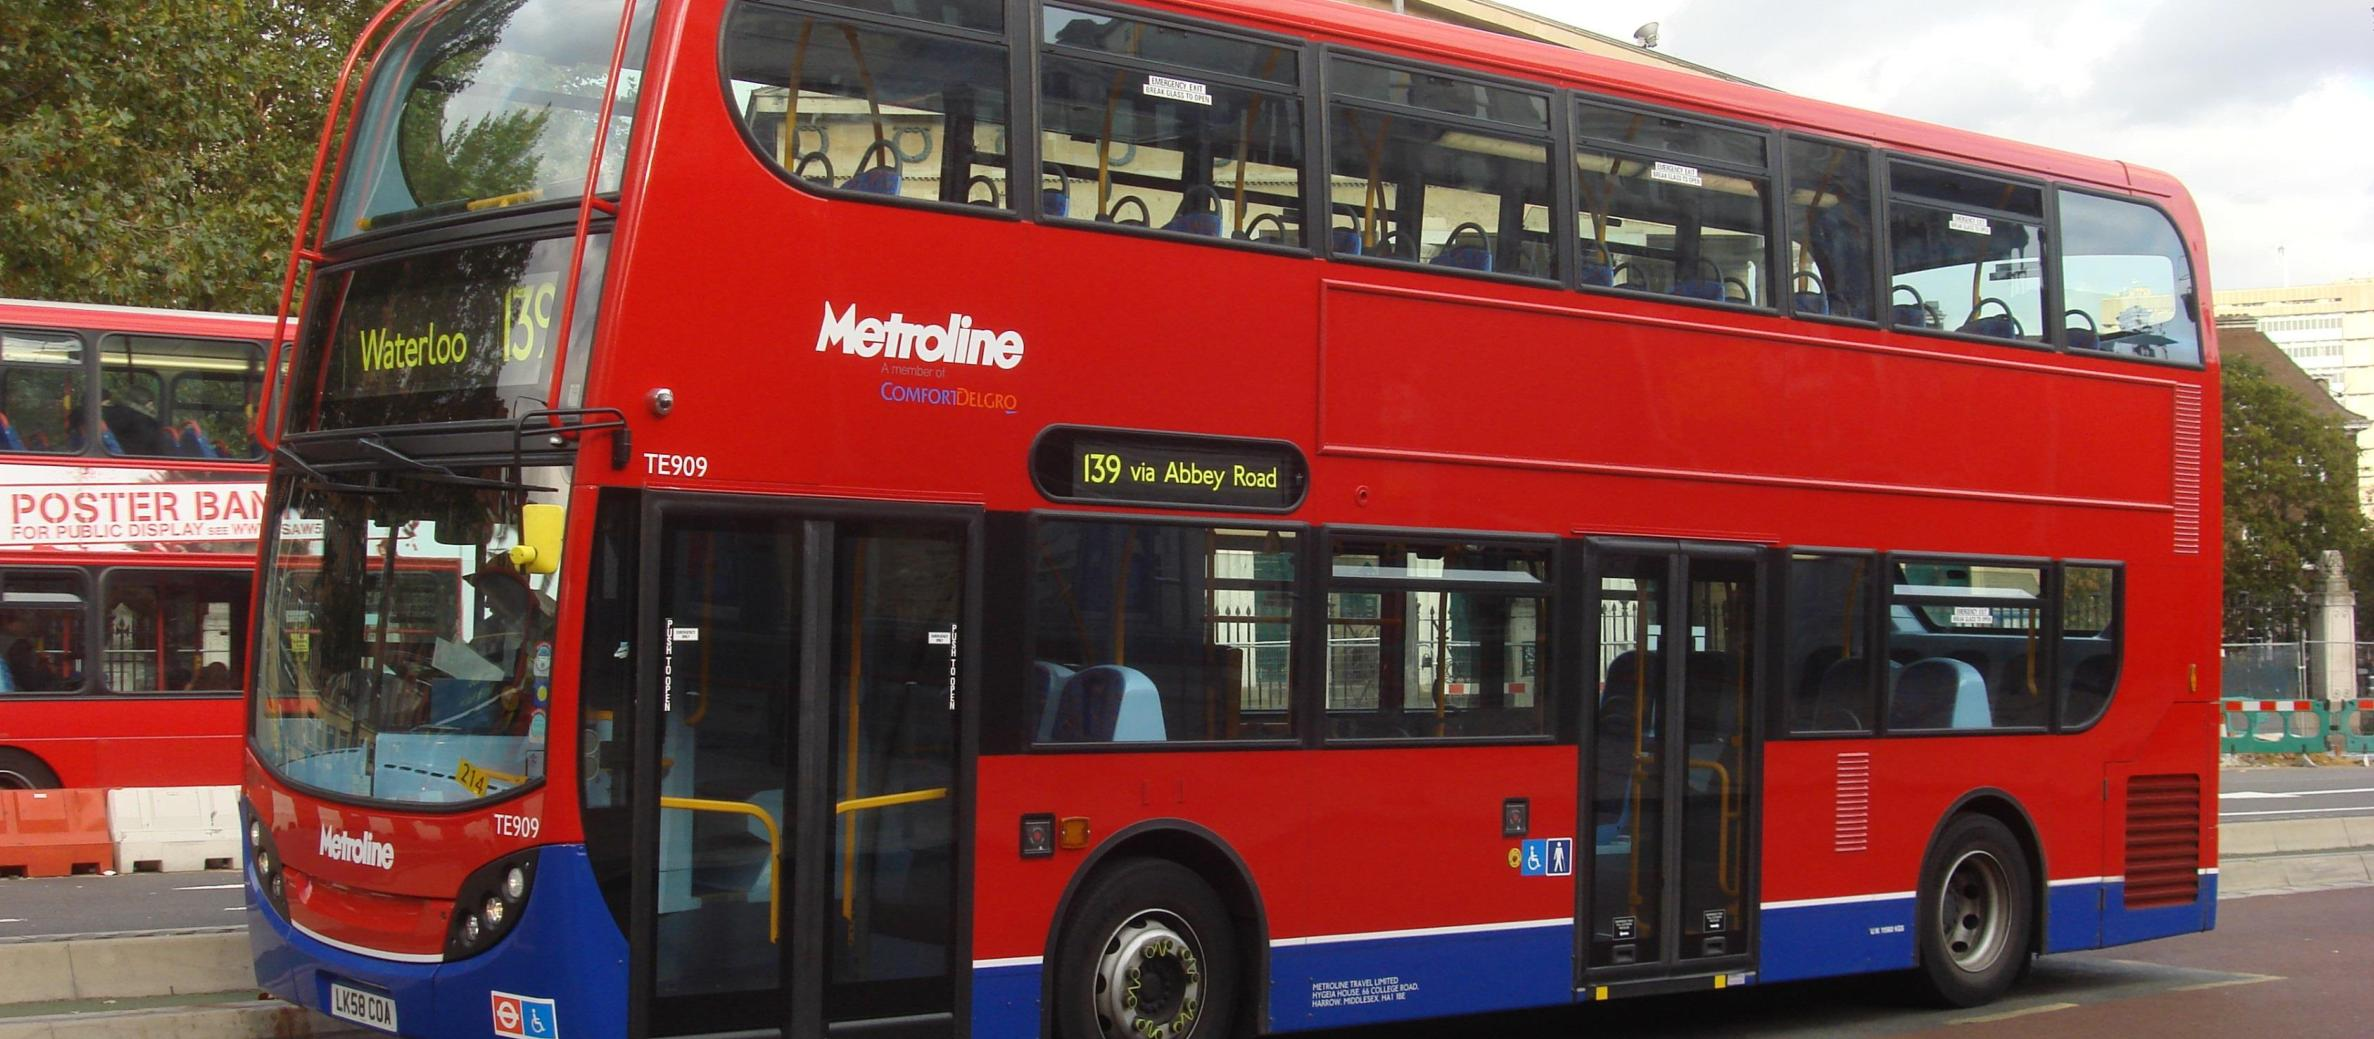 Police launch investigation into 'anti-Semitic' abuse on London bus